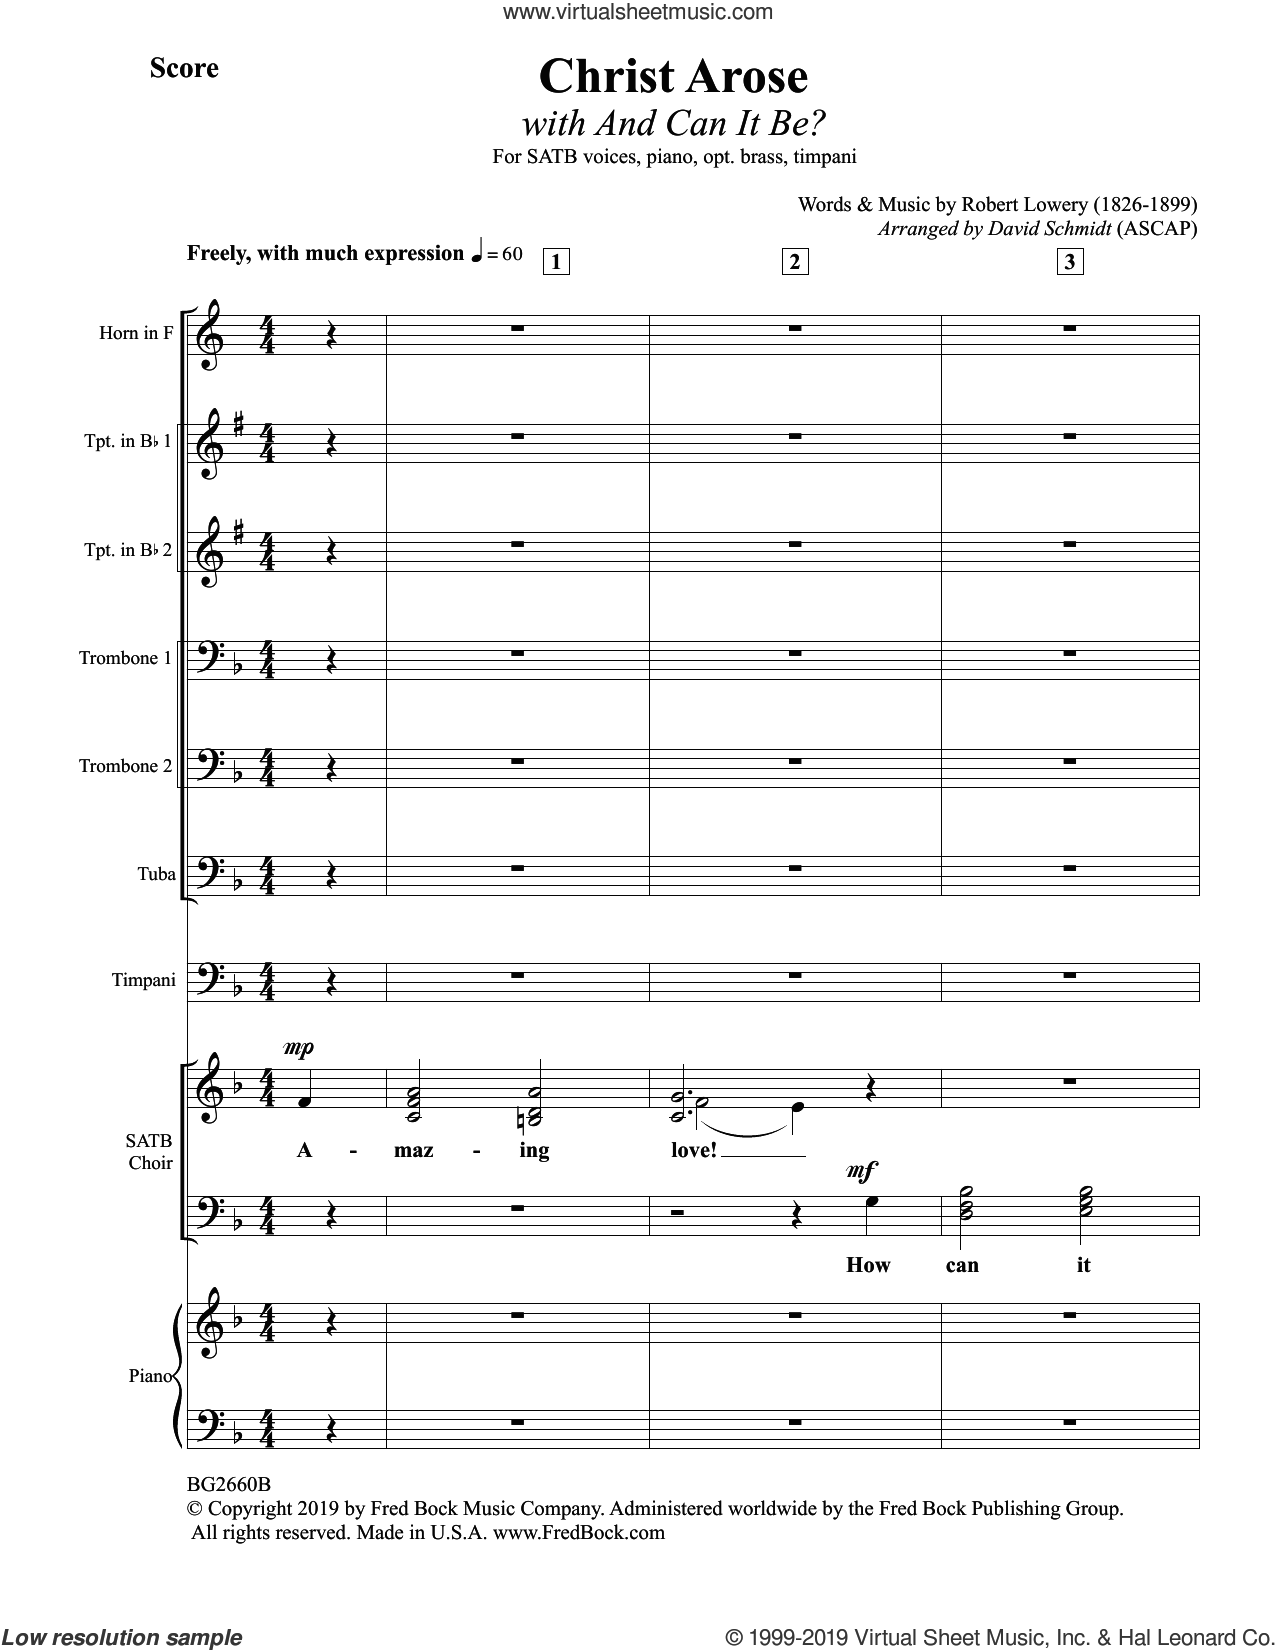 Christ Arose (with And Can It Be?) (arr. David Schmidt) (COMPLETE) sheet music for orchestra/band by Robert Lowry and David Schmidt, intermediate skill level